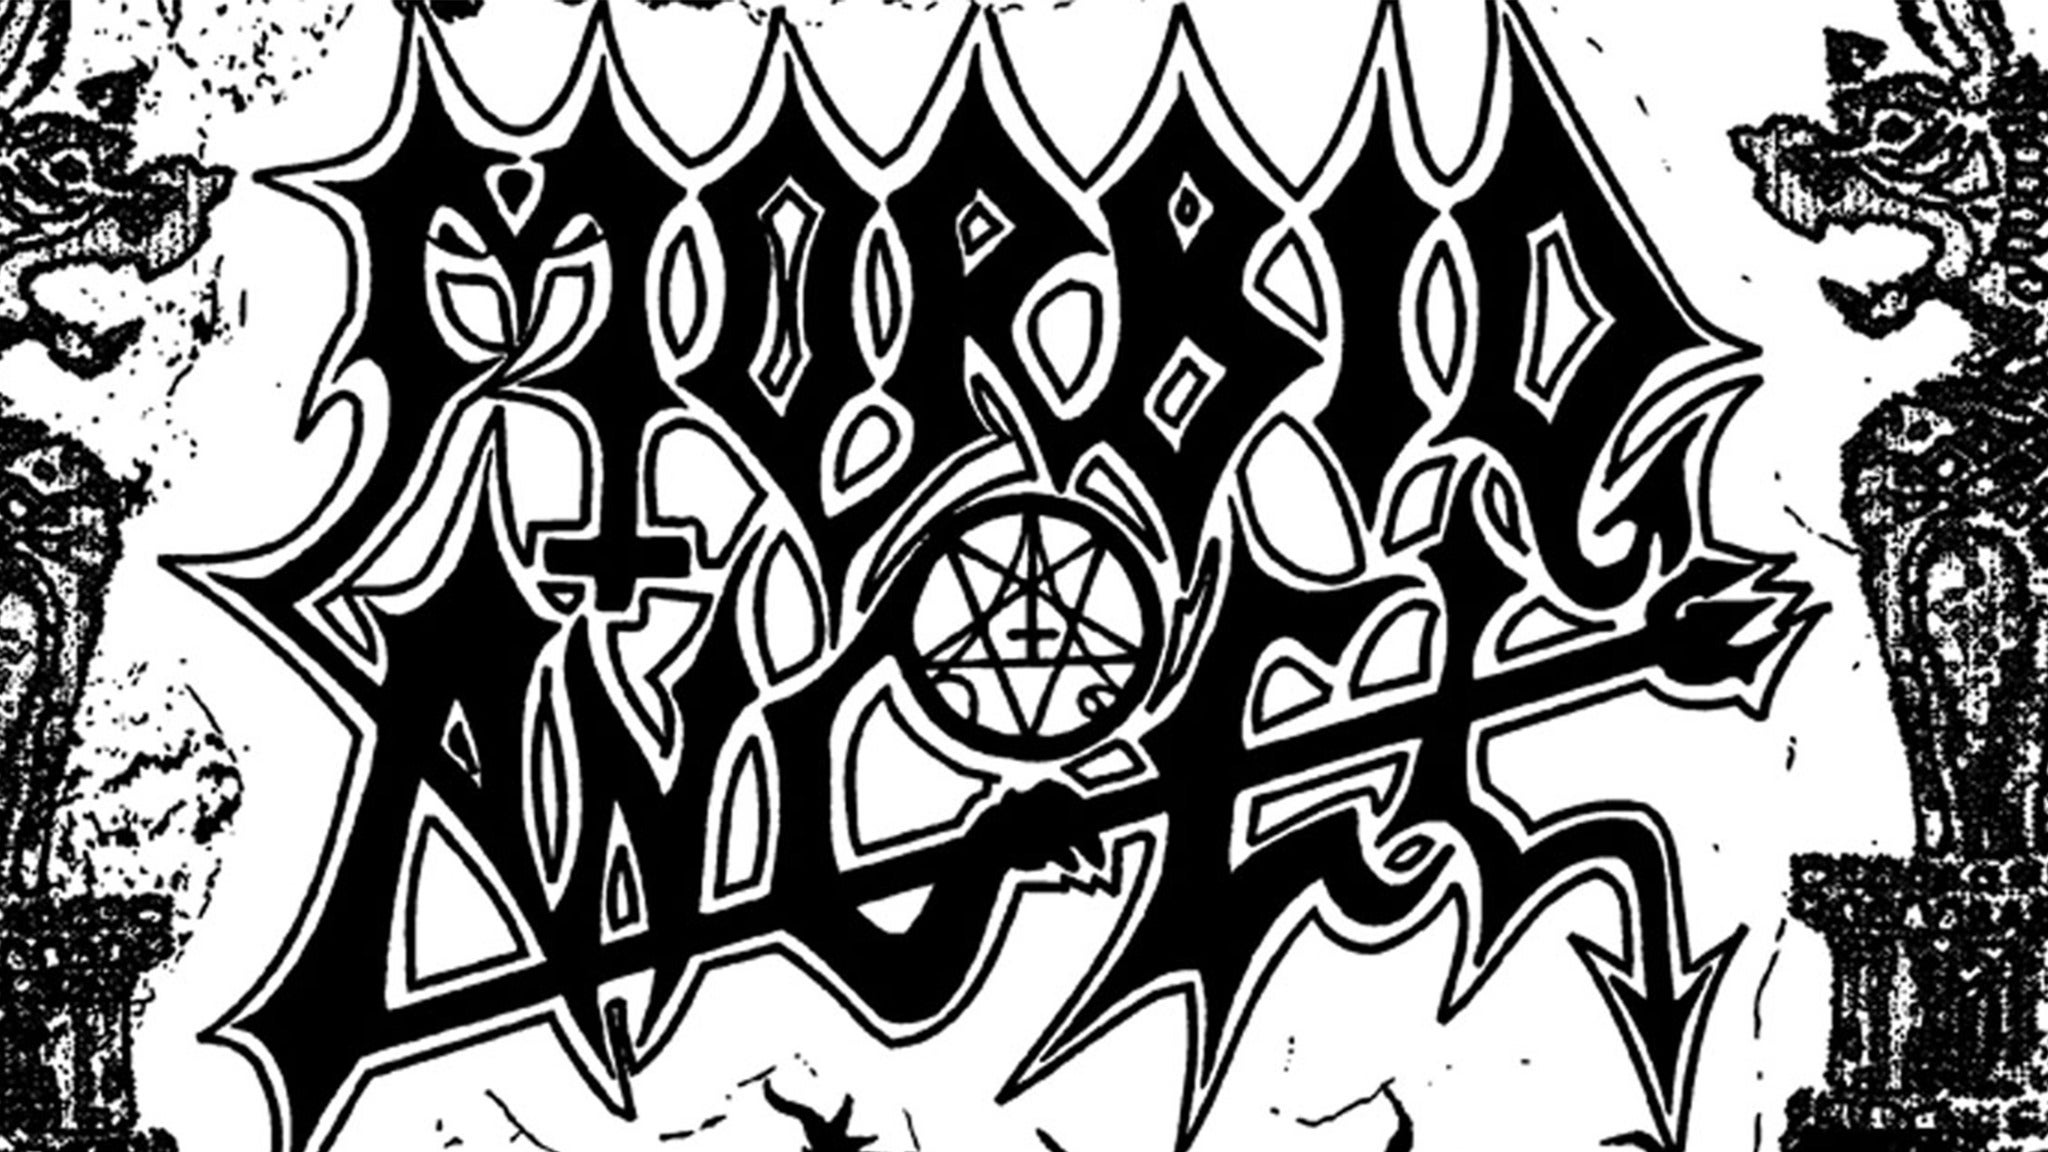 Morbid Angel - Kingdoms Disdained Tour at The Rebel Lounge